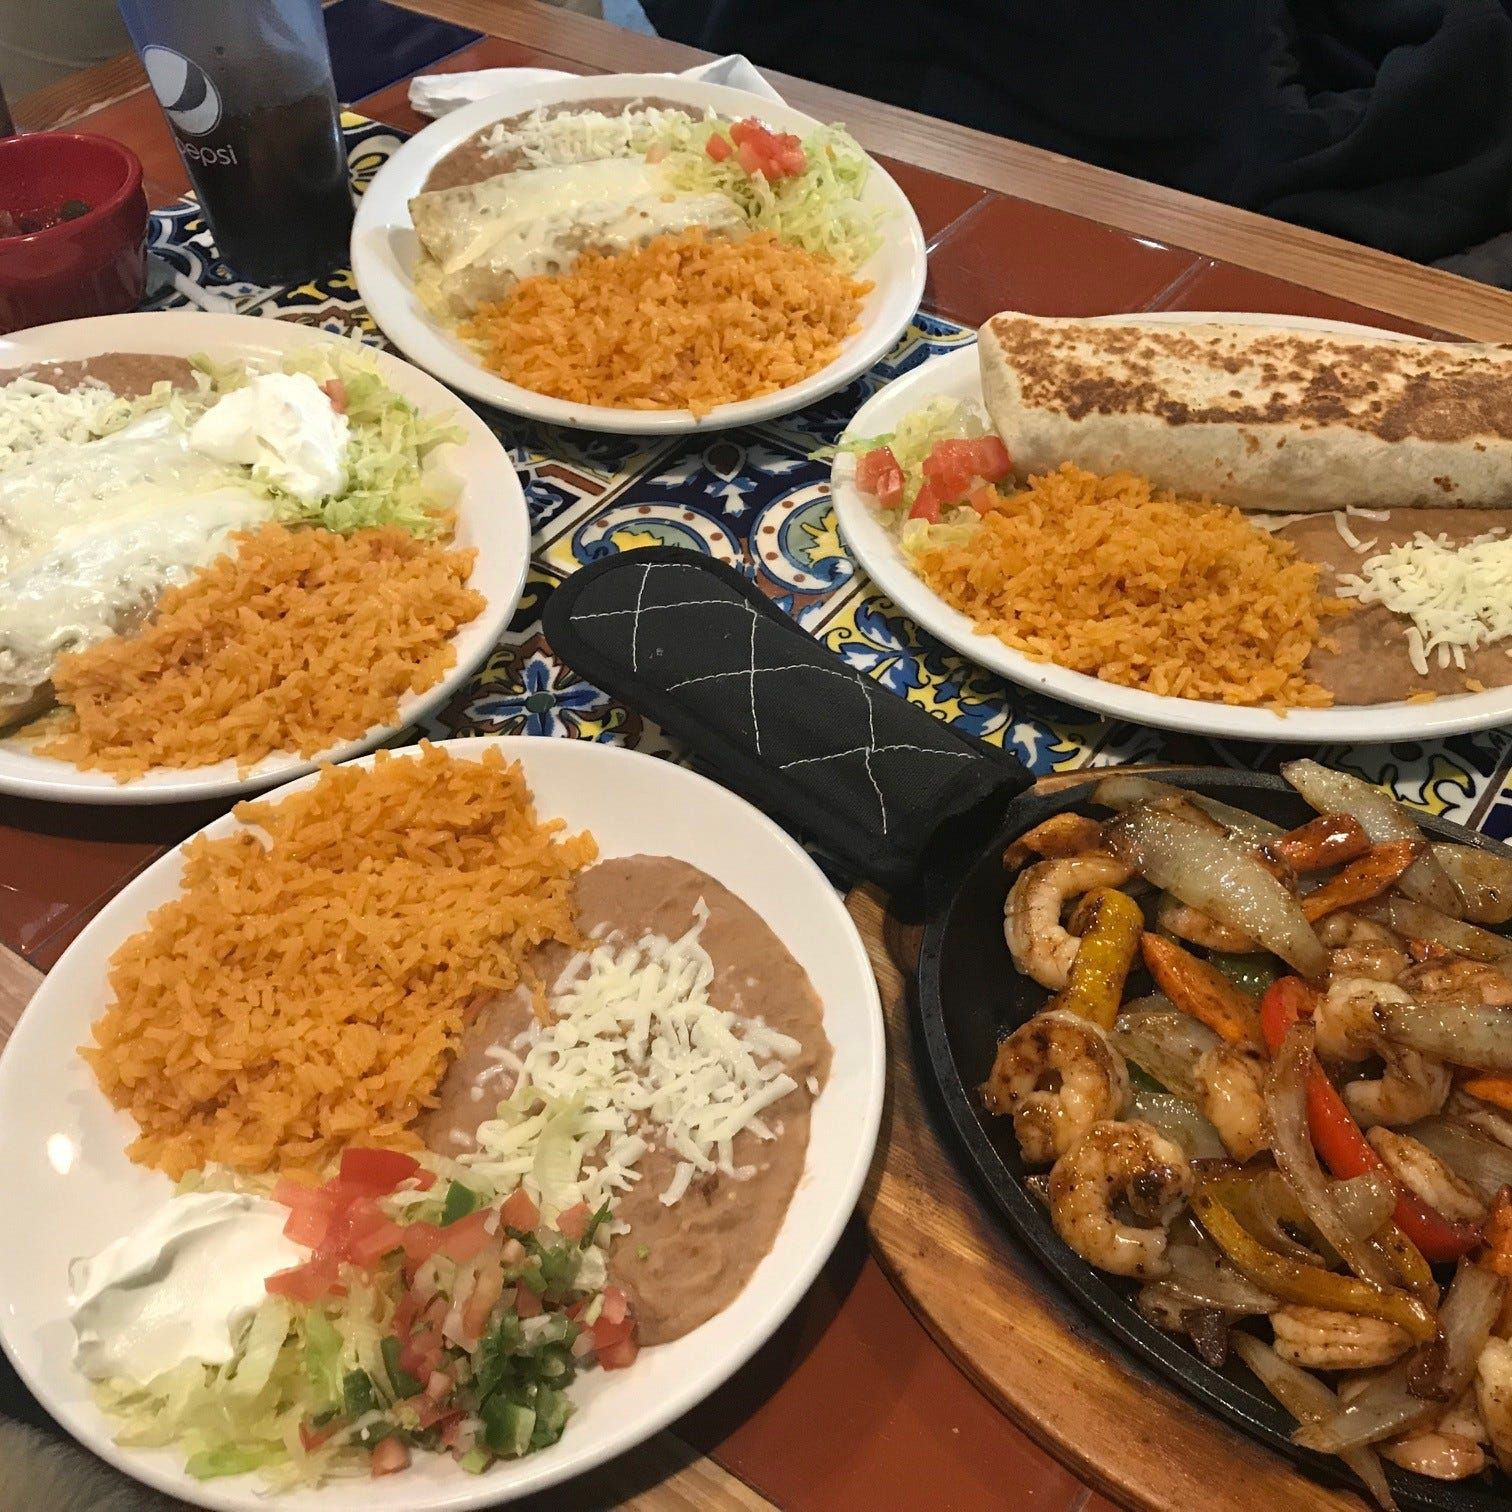 Sheboygan's 2 Amigos delivers big, flavorful portions | Scrumptious